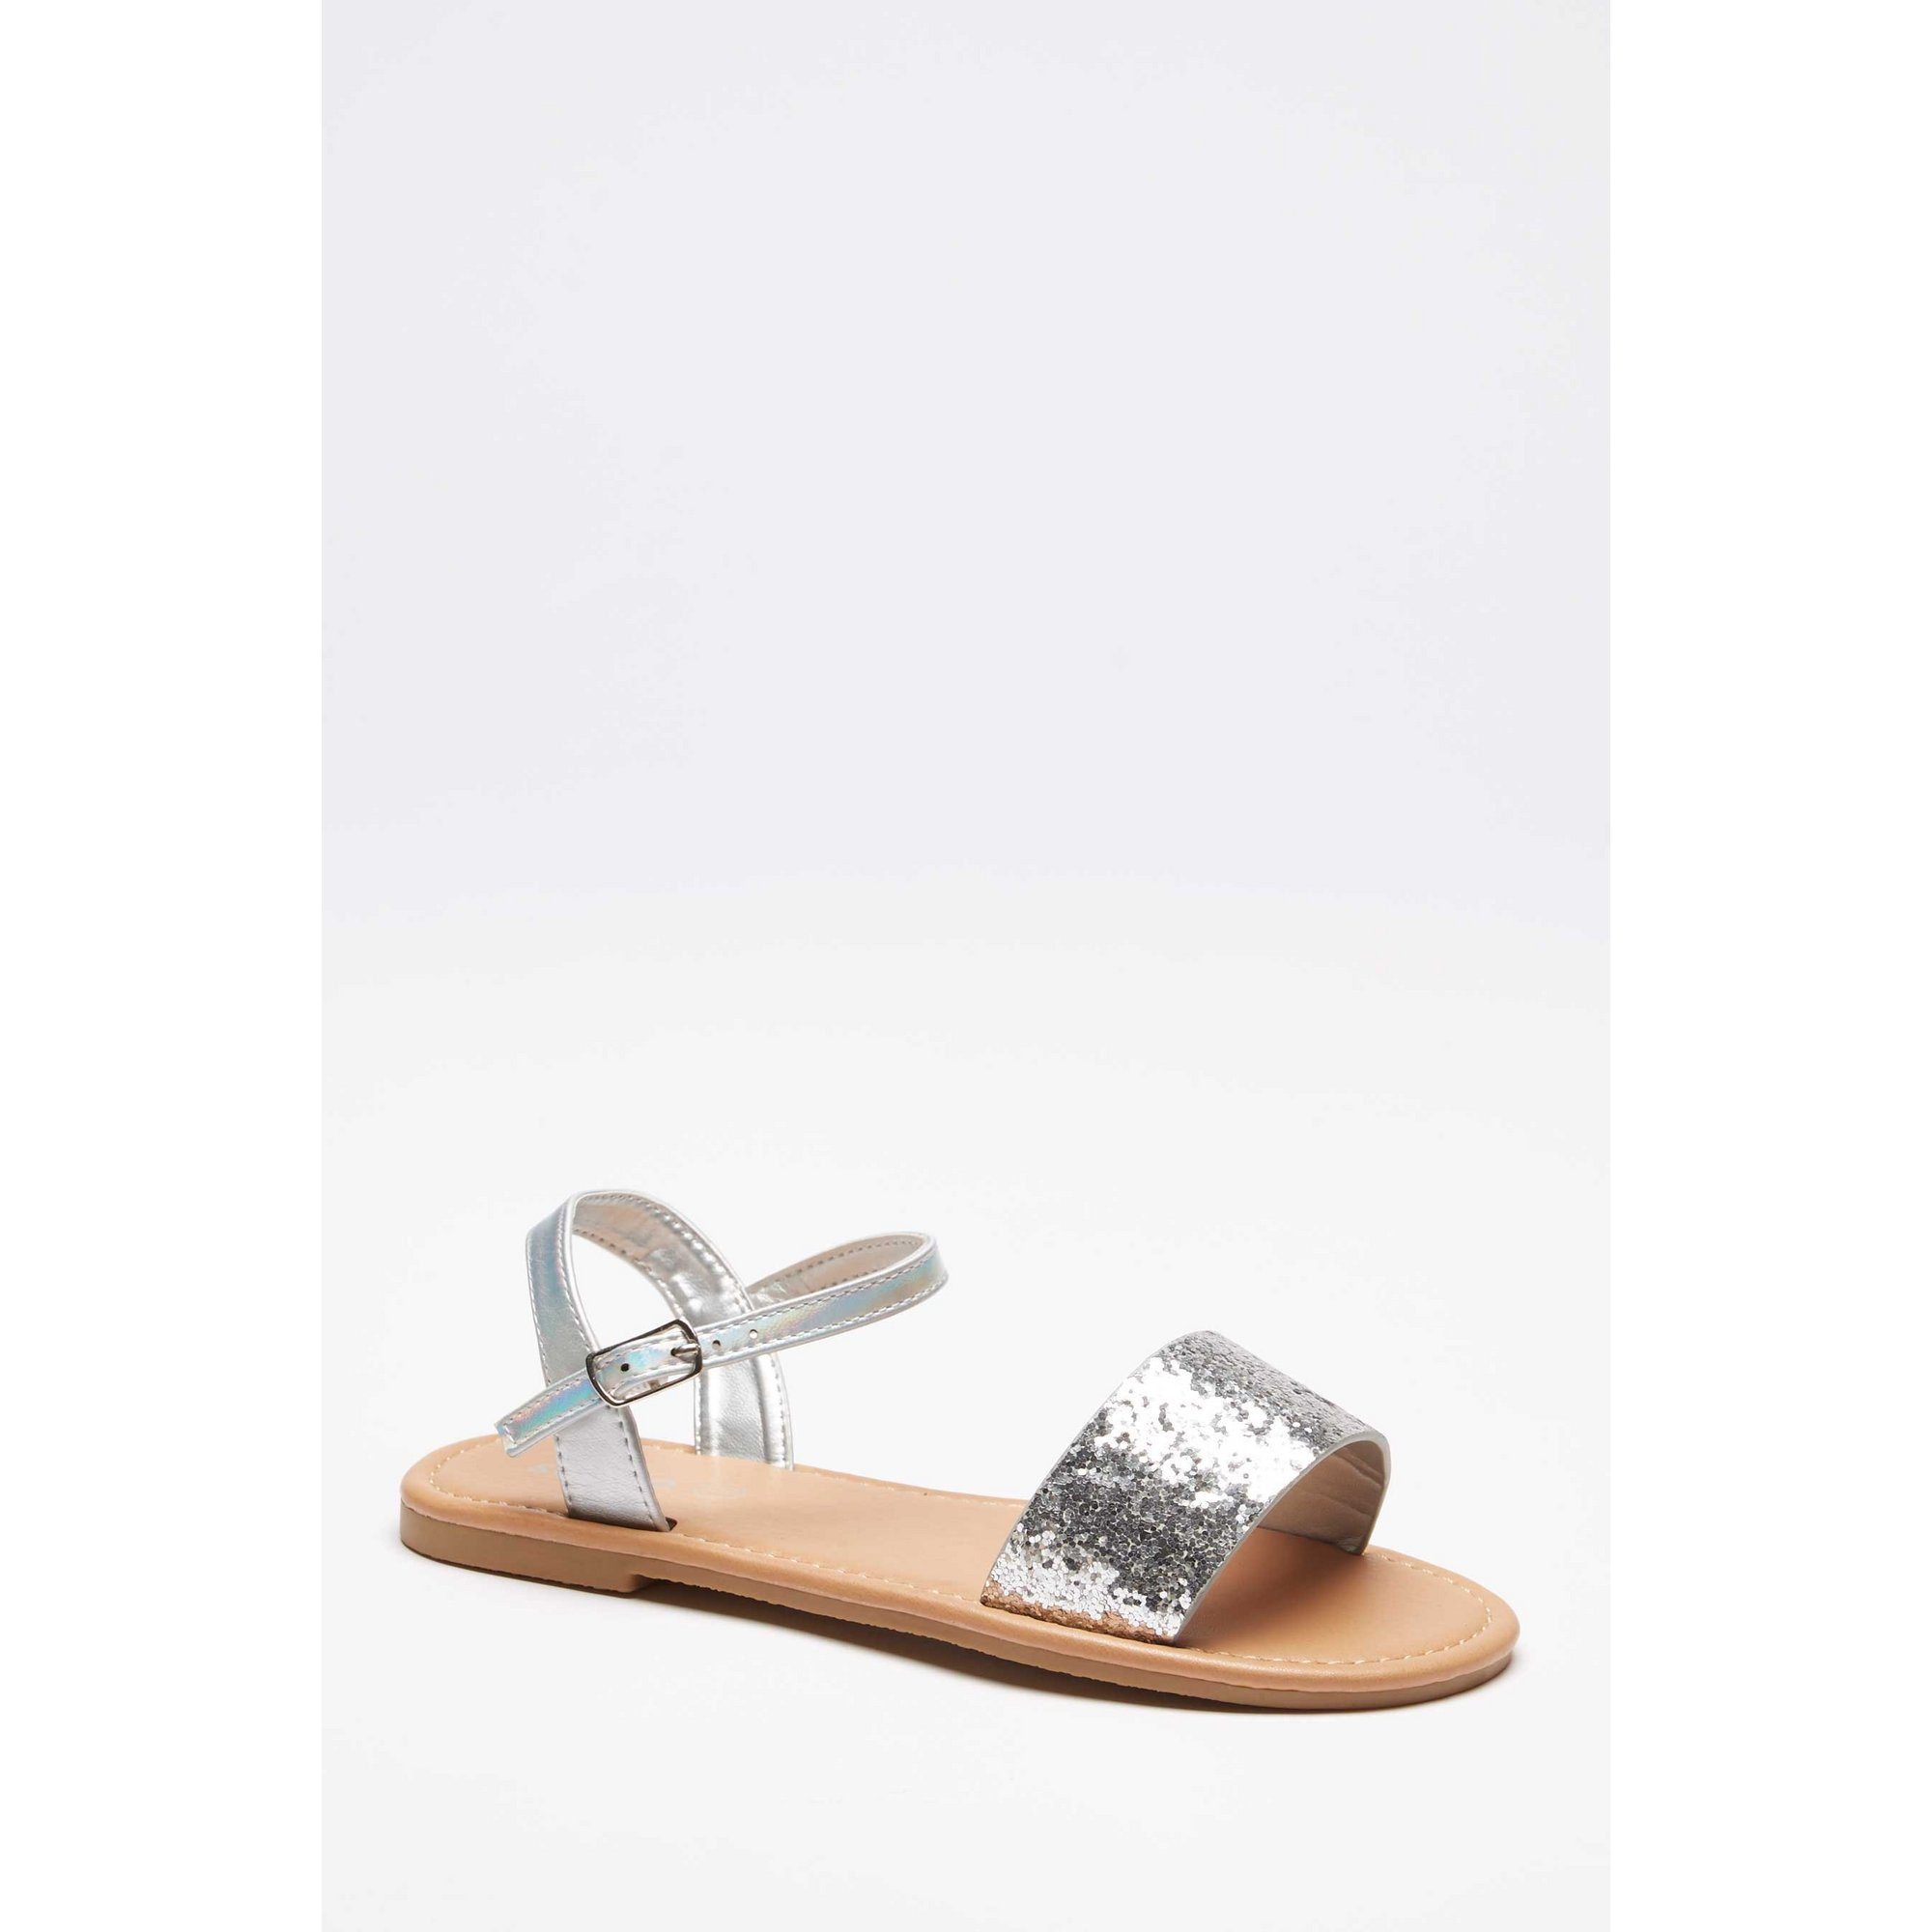 Image of Girls 2 Part Silver Sandals